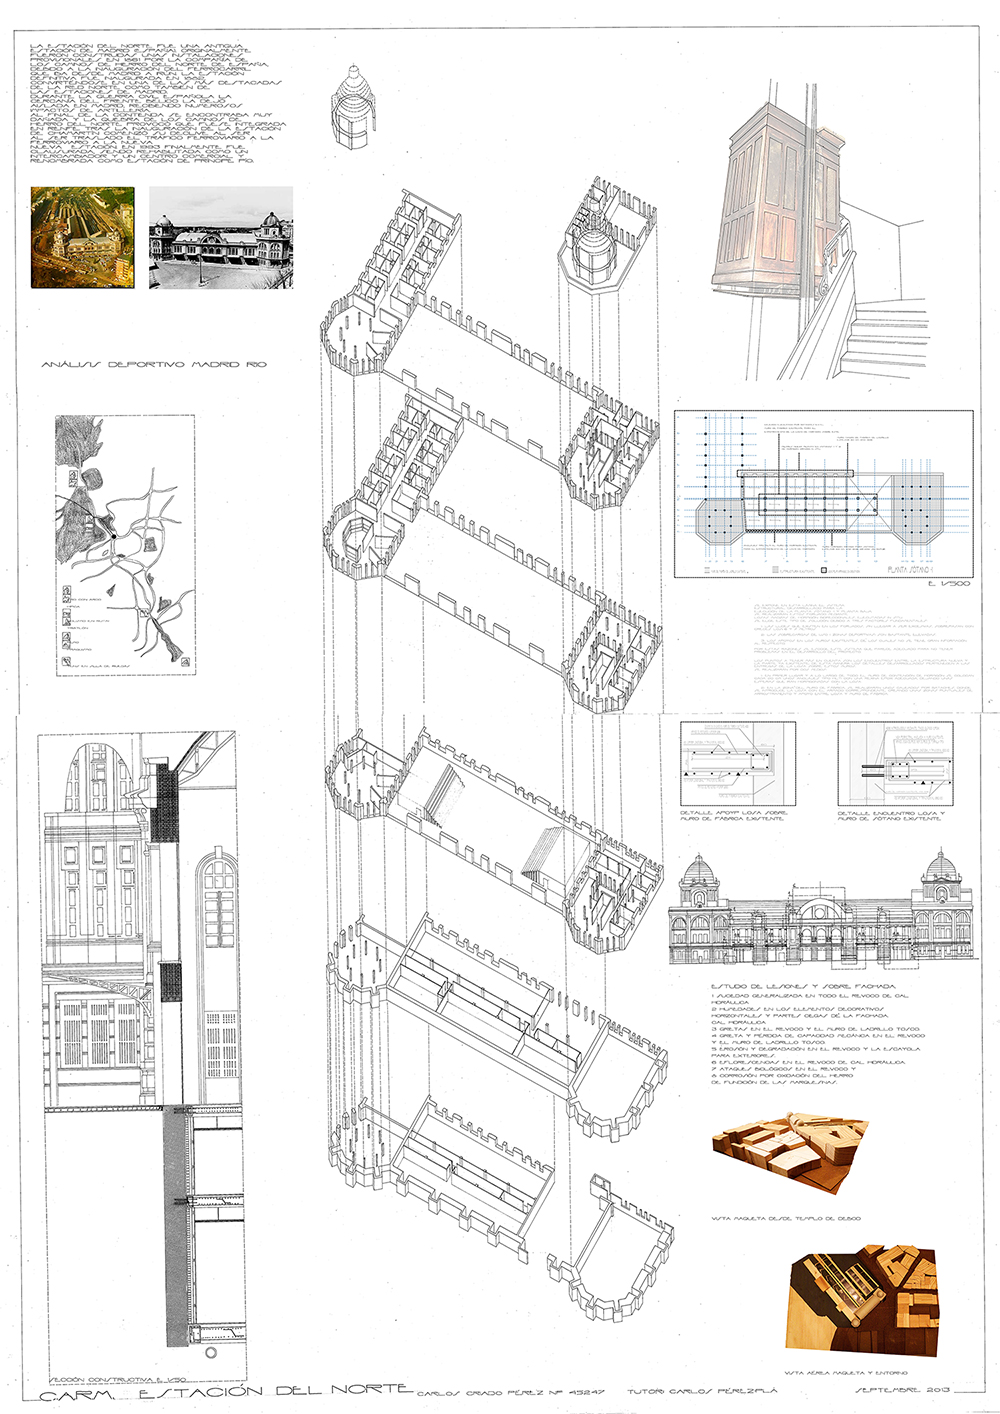 This is the last board of a series that we need to present to get our architectural degree. In this Resume Board of my Degree Final Project, I summarize the idea, the construction, the structure and some 3D views of the project.